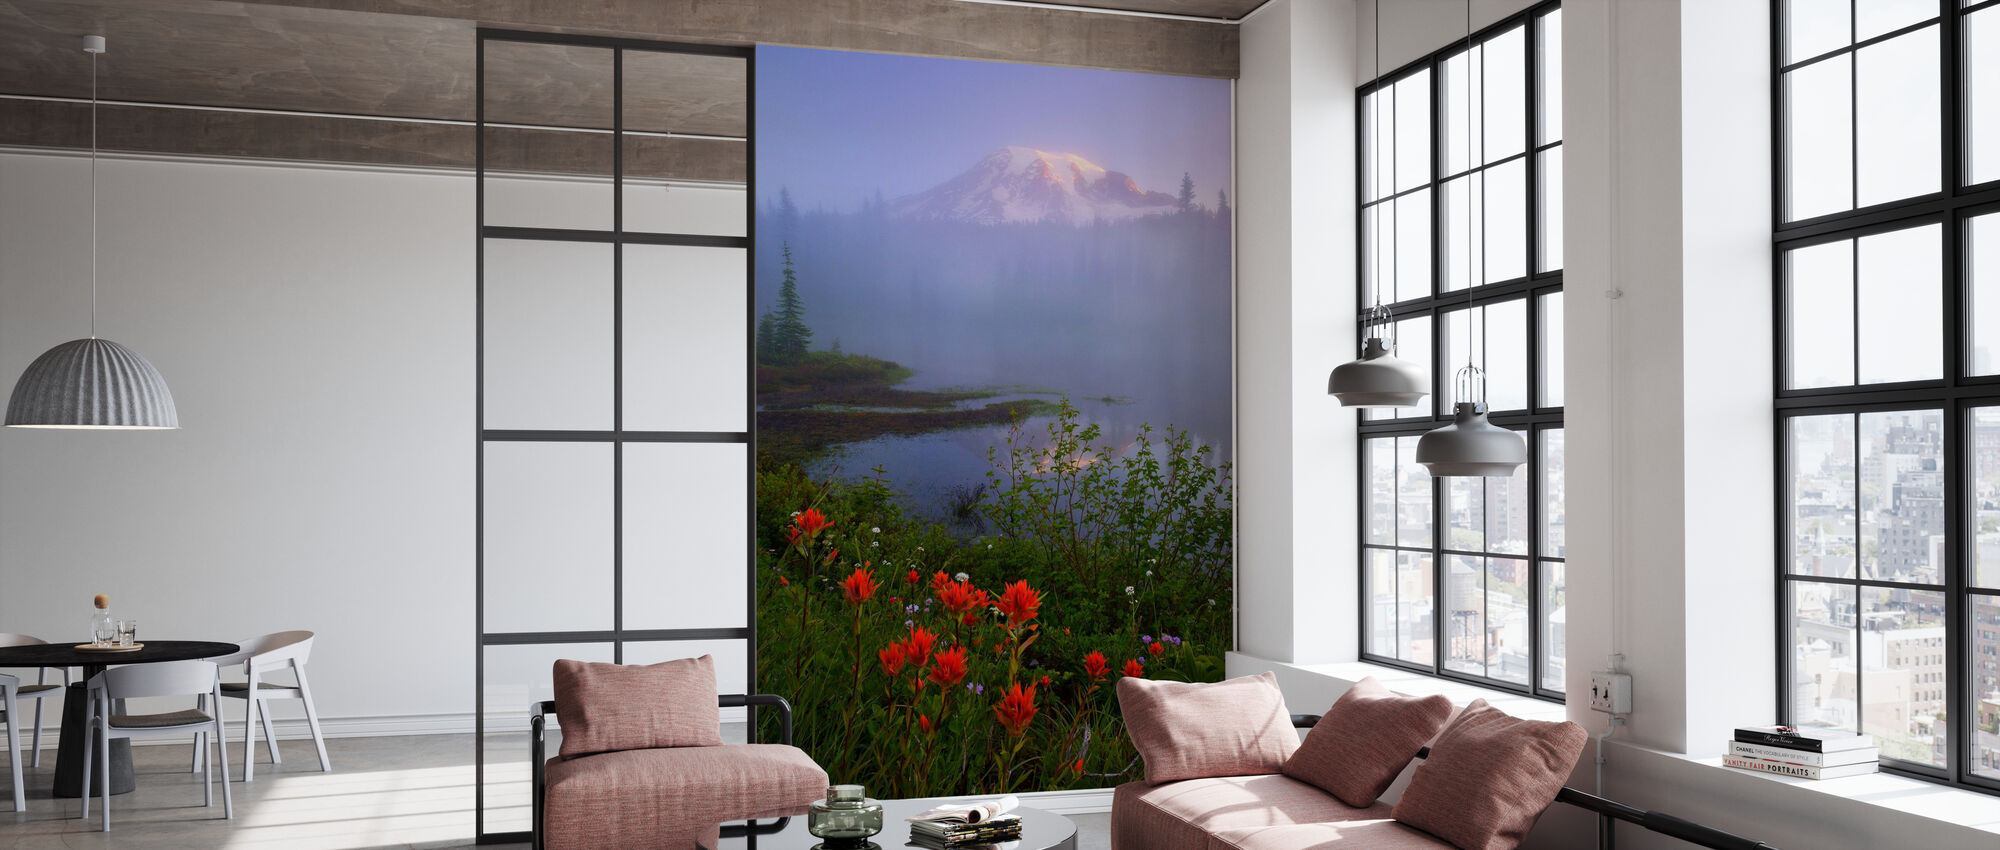 Early Summer Morning, Rainier National Park - Wallpaper - Office